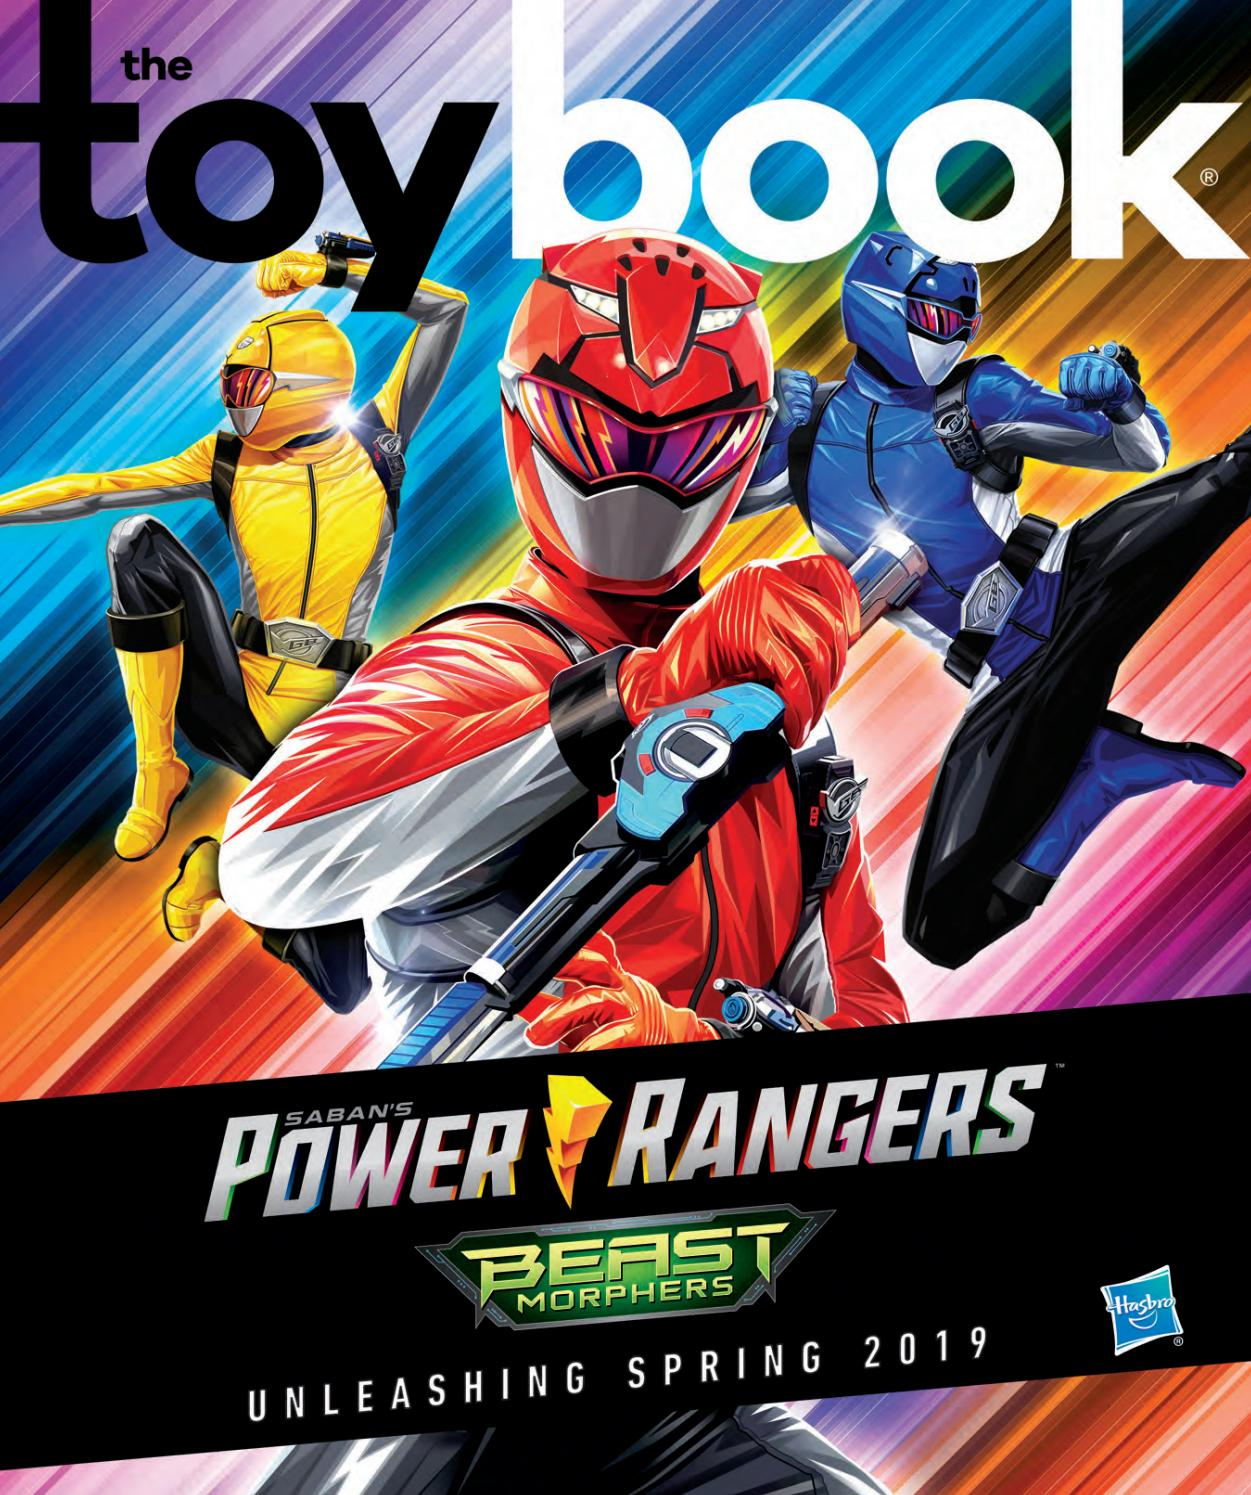 February 2019 By The Toy Book Issuu